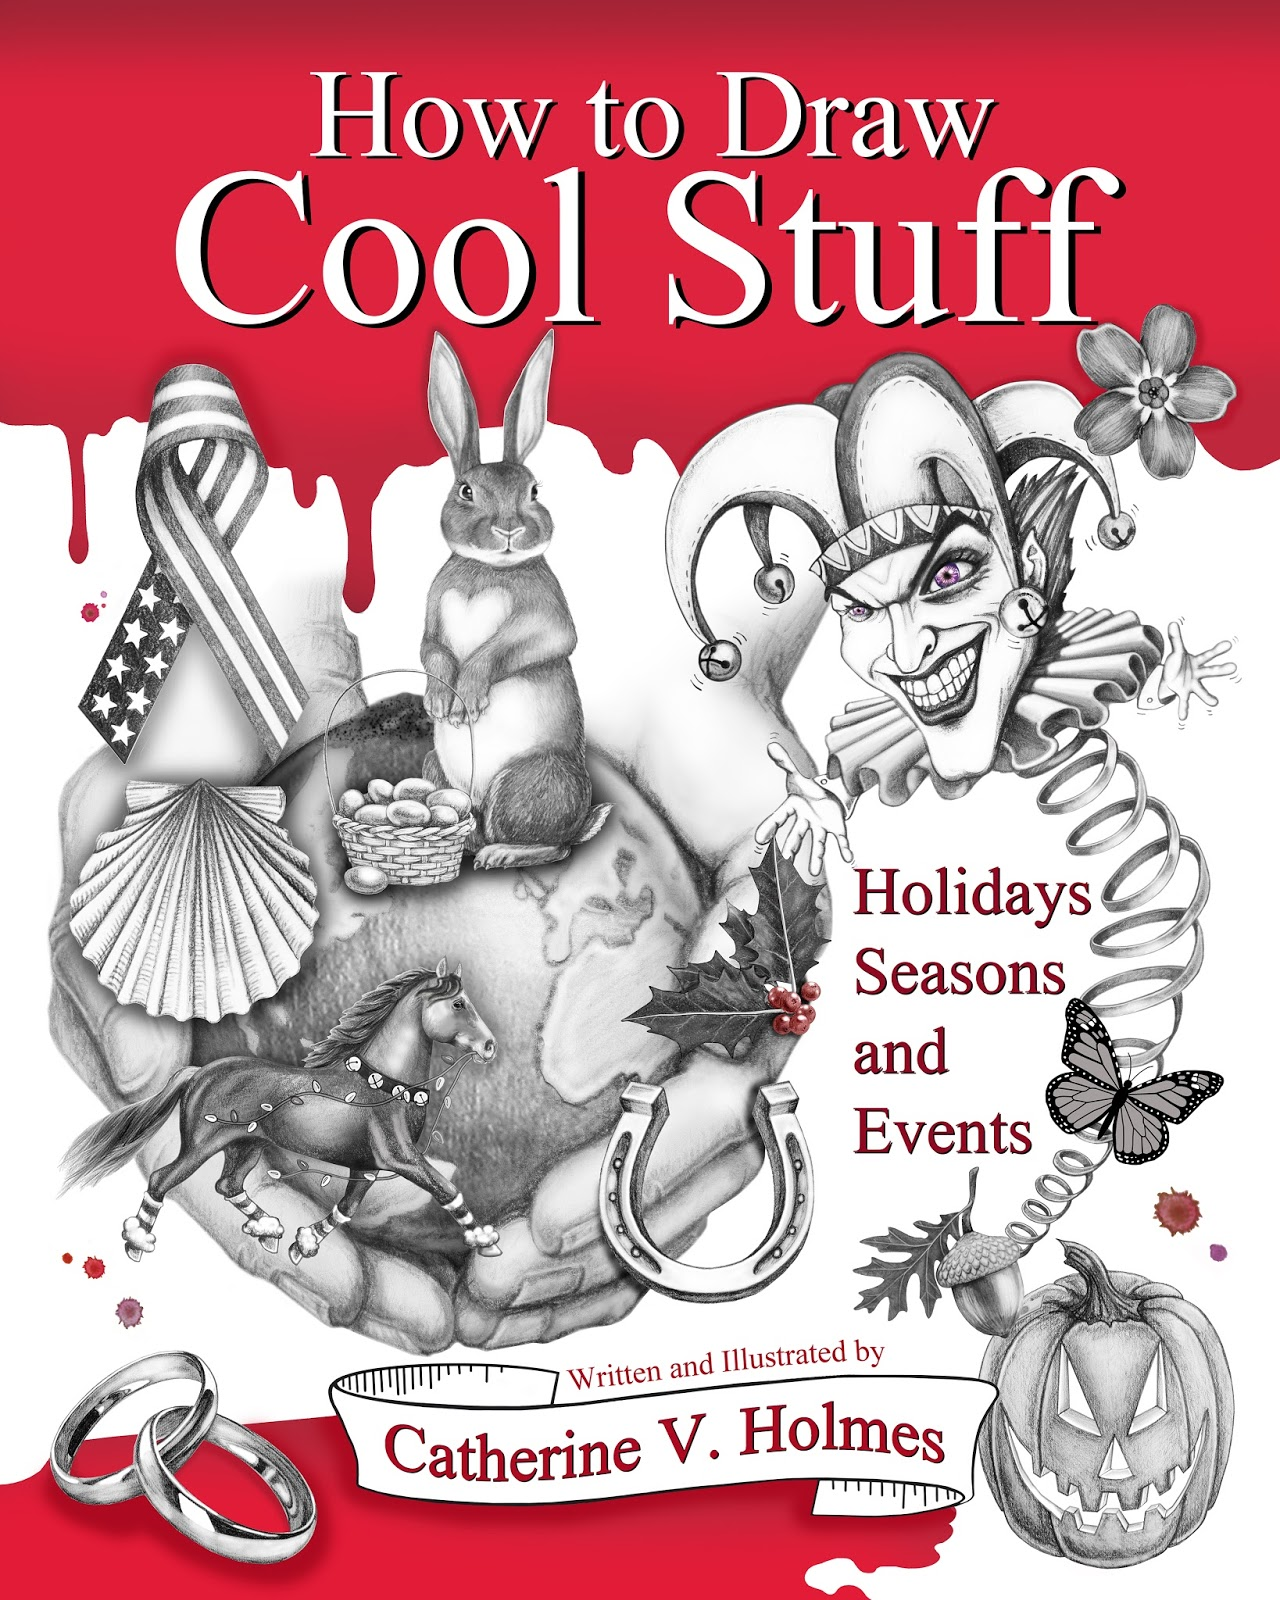 How To Draw Cool Stuff: Holidays, Seasons And Events Is A Stepbystep  Drawing Guide That Illustrates Popular Celebrations, Holidays And Events  For Your